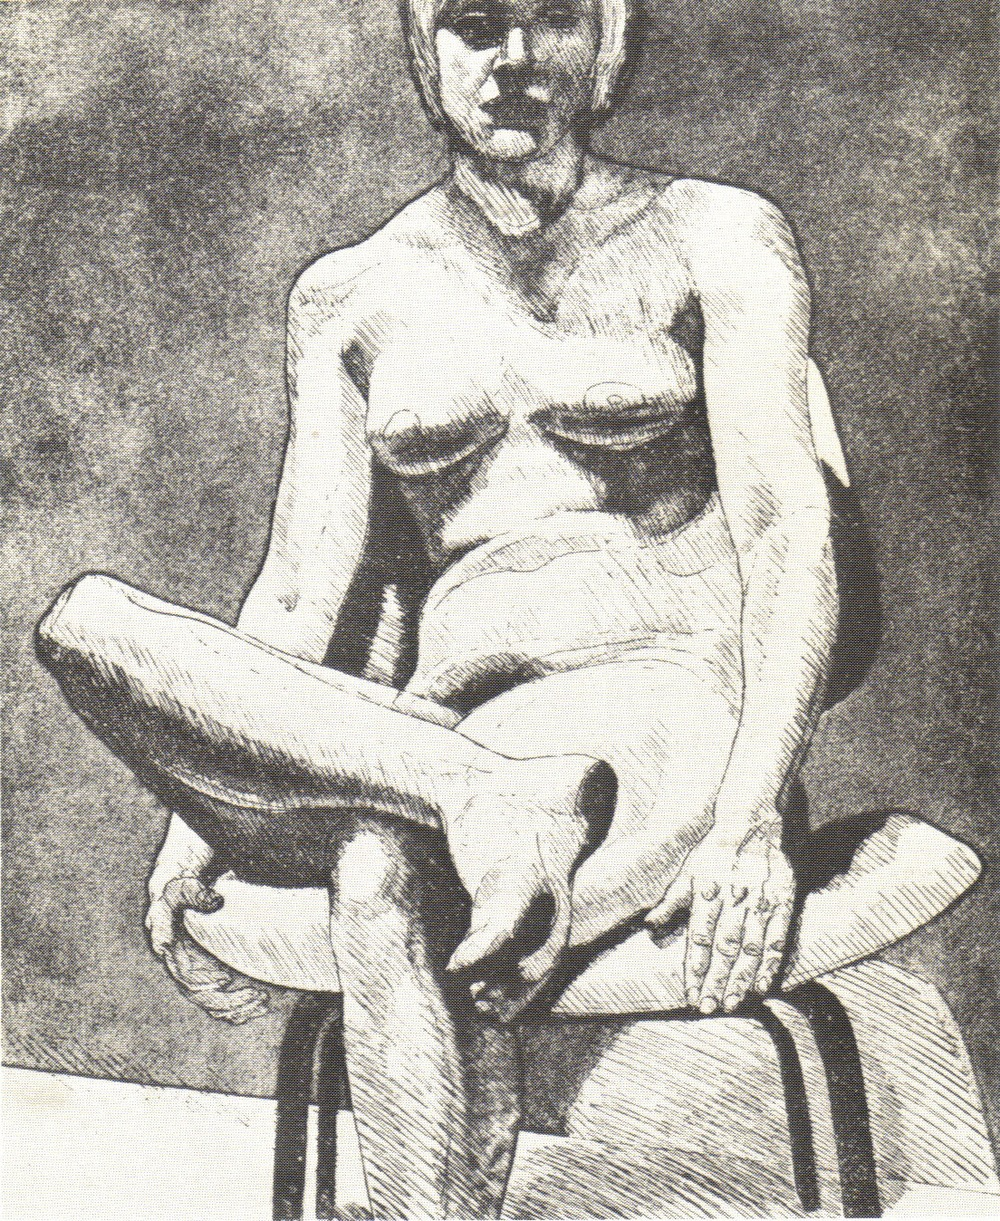 1970, Nude on Eames Chair, 44x36 cm, aquatint-line etching, PPS020.jpg